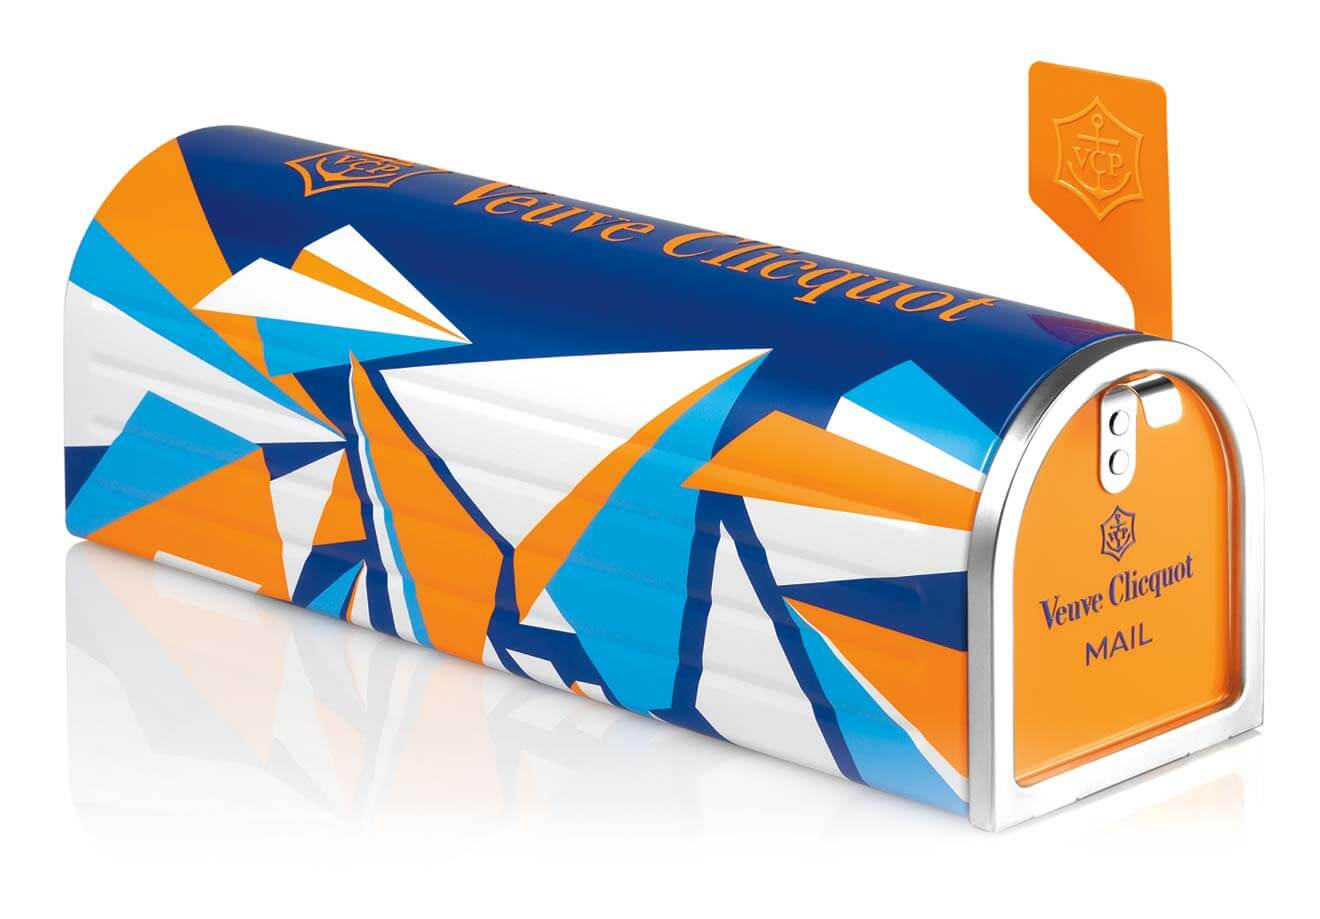 Clicquot En Route Limited Edition Mailbox